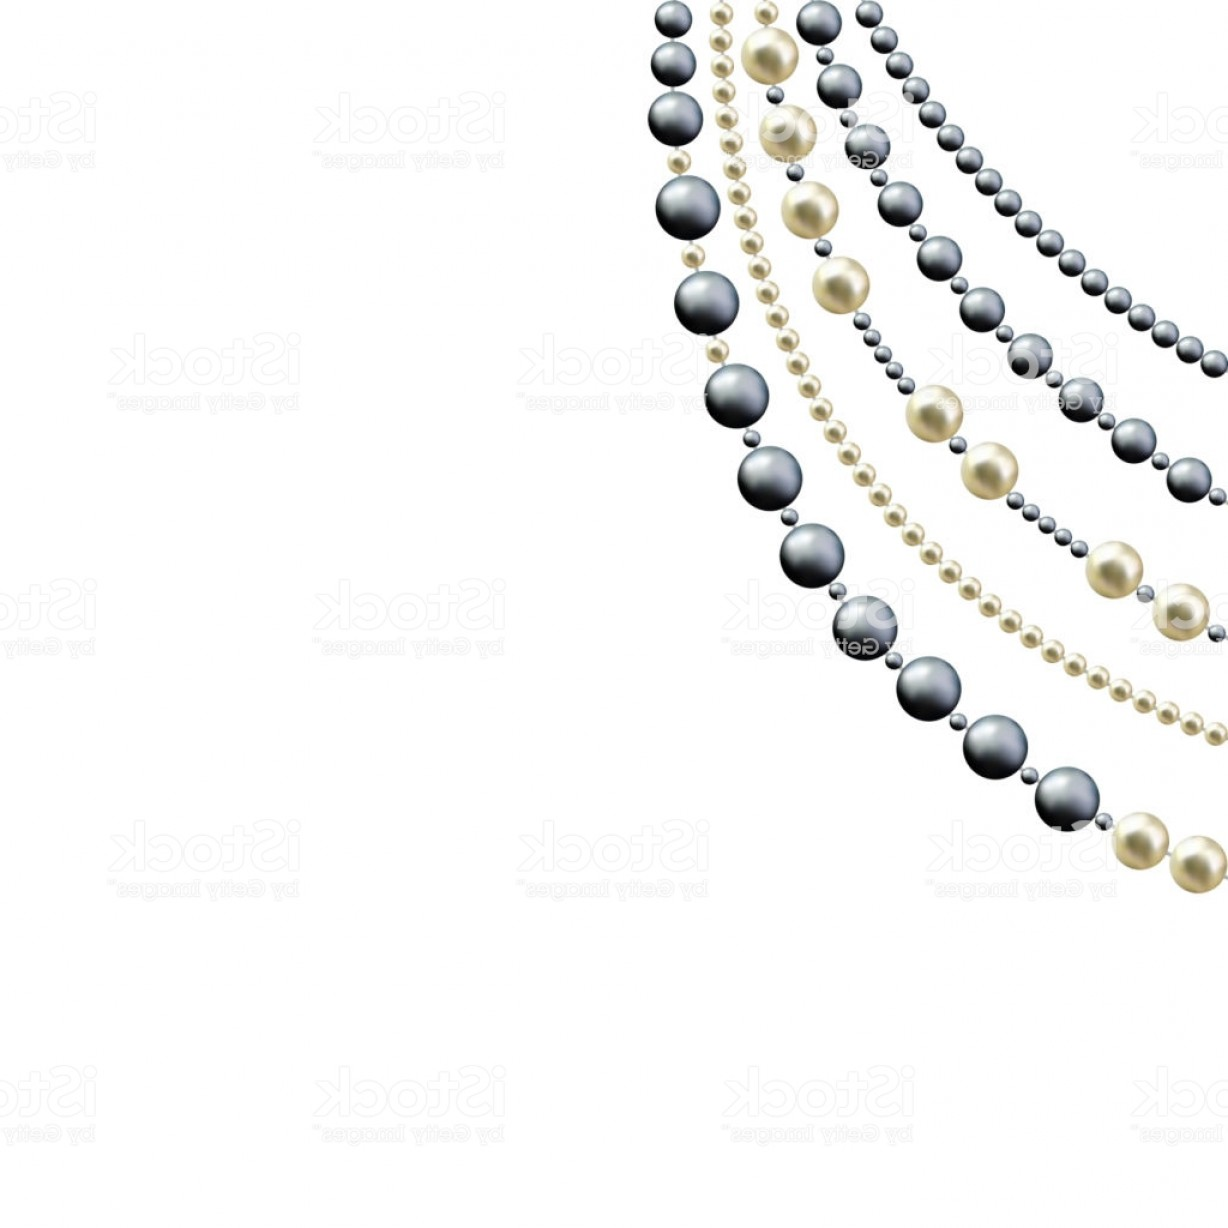 Pearl Necklace Vector Clip Art: Pearl Jewelry Beads Decoration Abstract Vector Background Luxury The Black White Gm